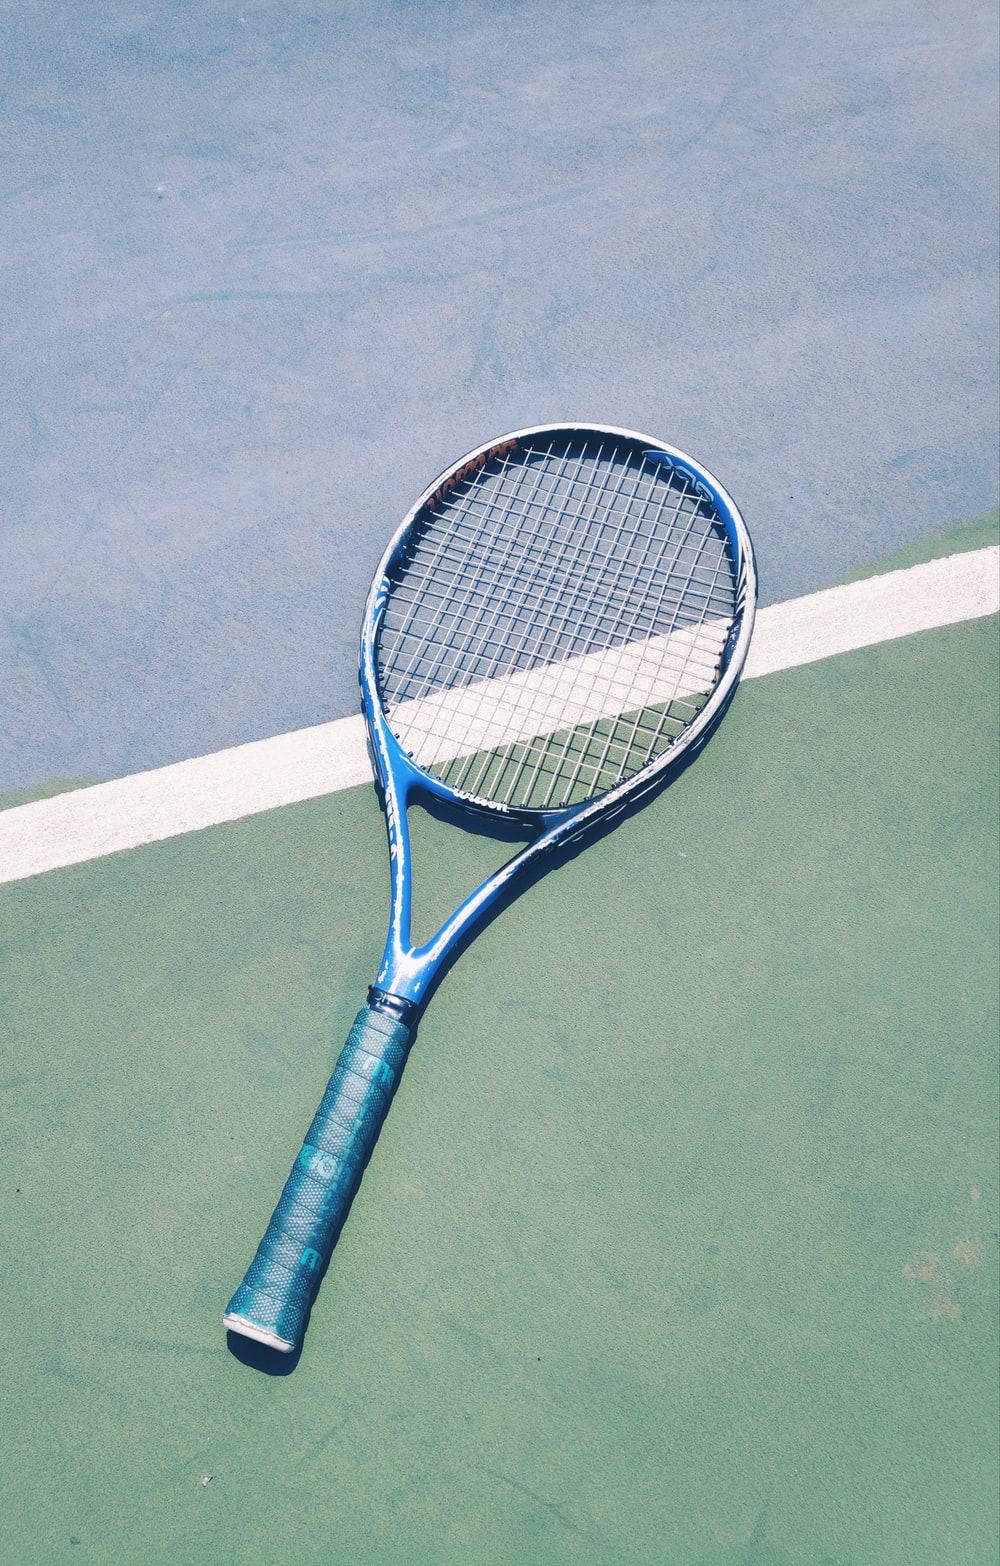 blue tennis racket on green surface